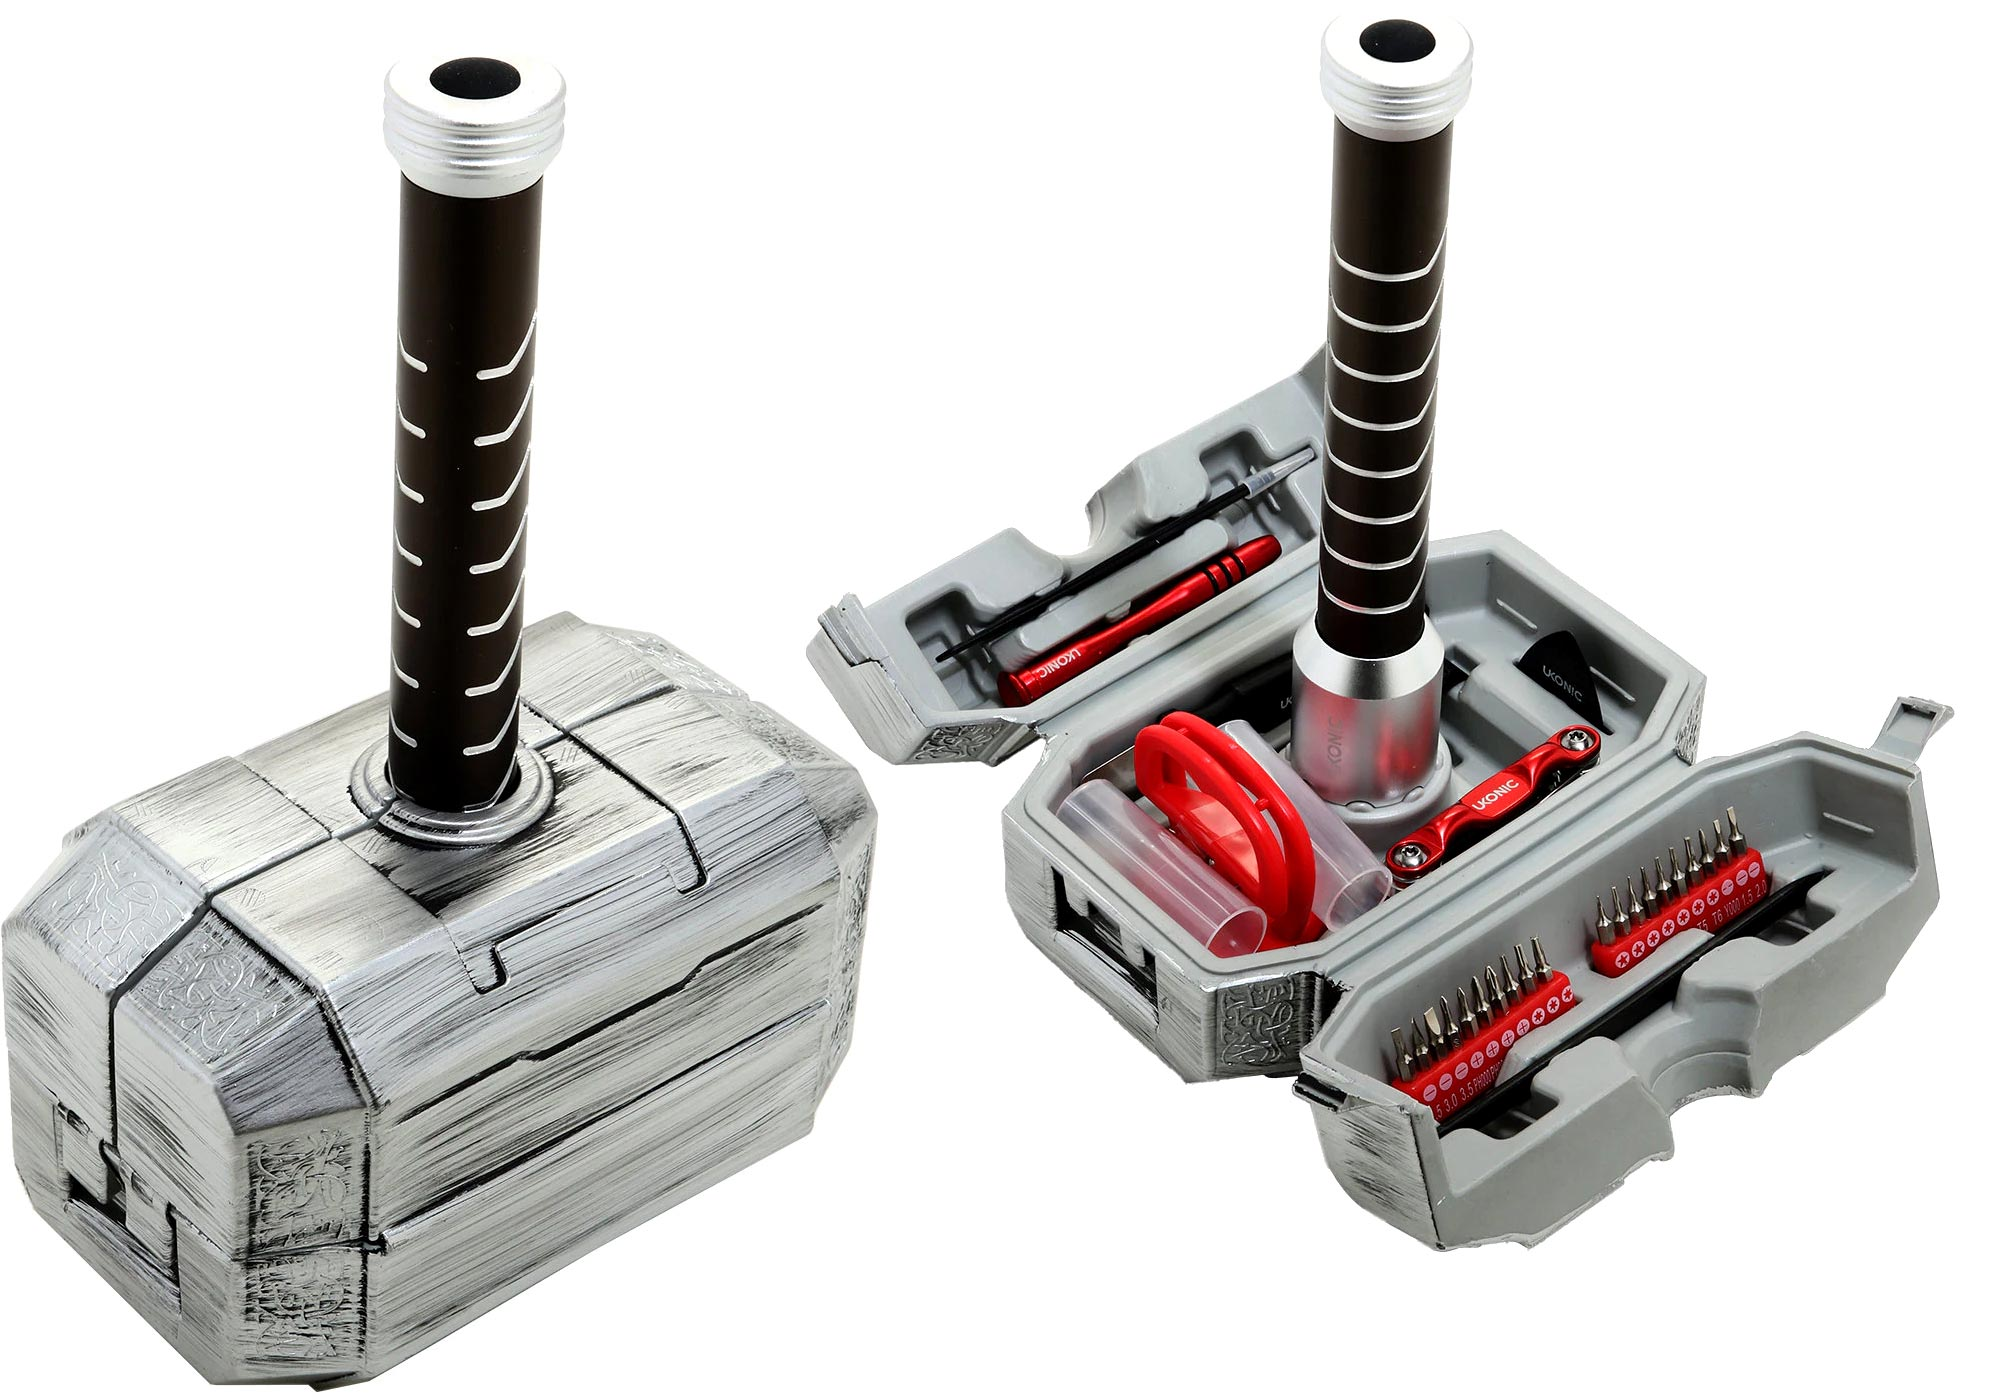 Thor S Mjolnir Electronic Repair Tool Kit